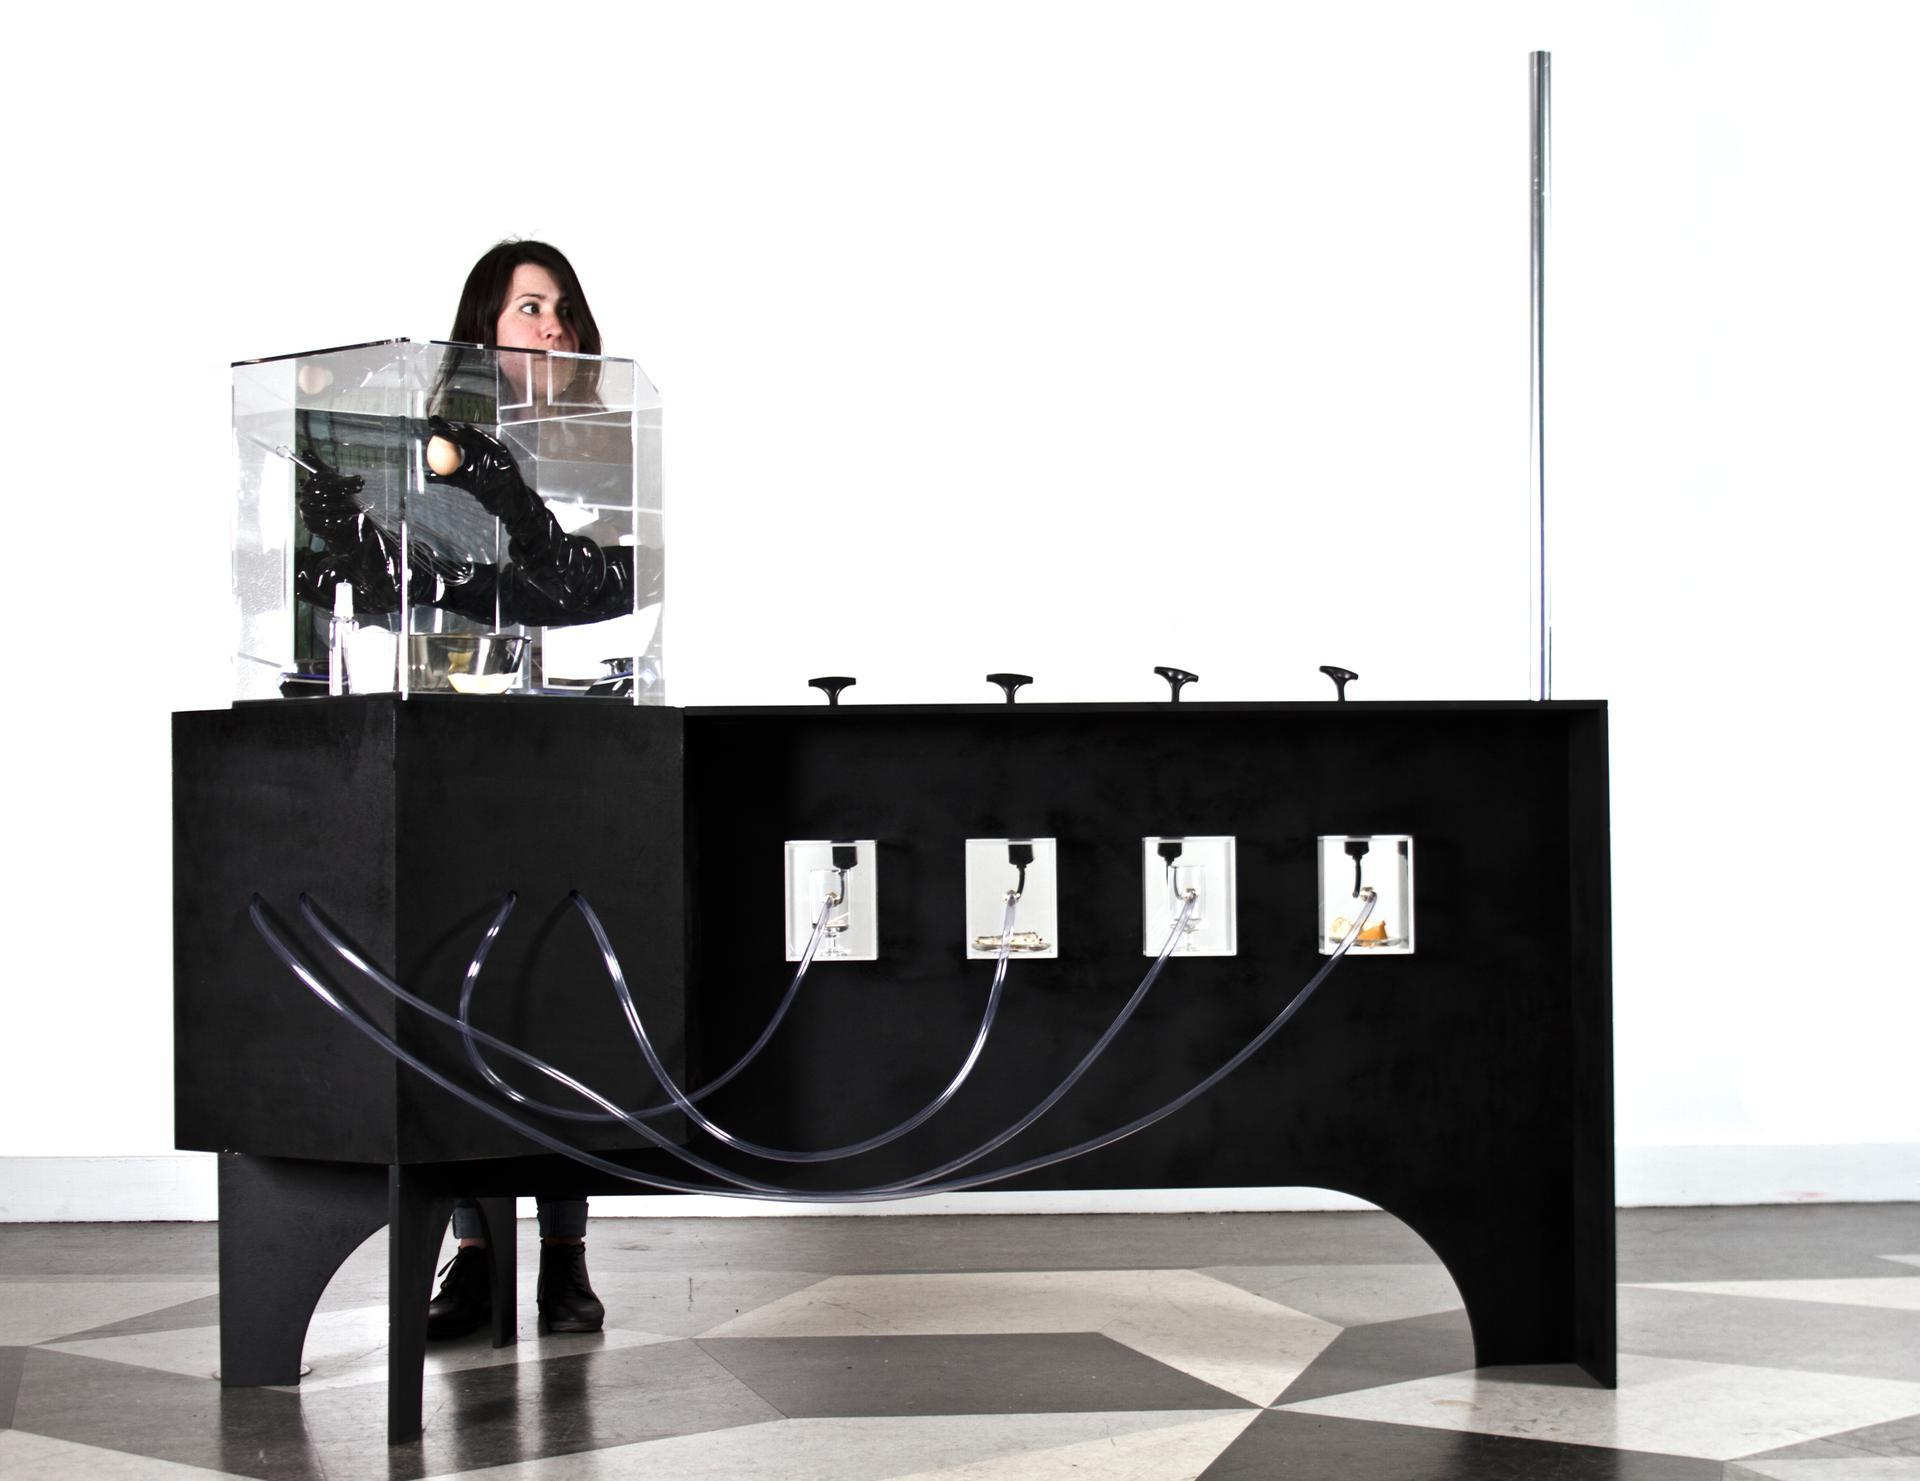 The Smog Tasting Project evolved in 2015 to include a smog synthesizer, which CGG built in collaboration with academics from the University of California, Riverside. Jordan Ralph Design